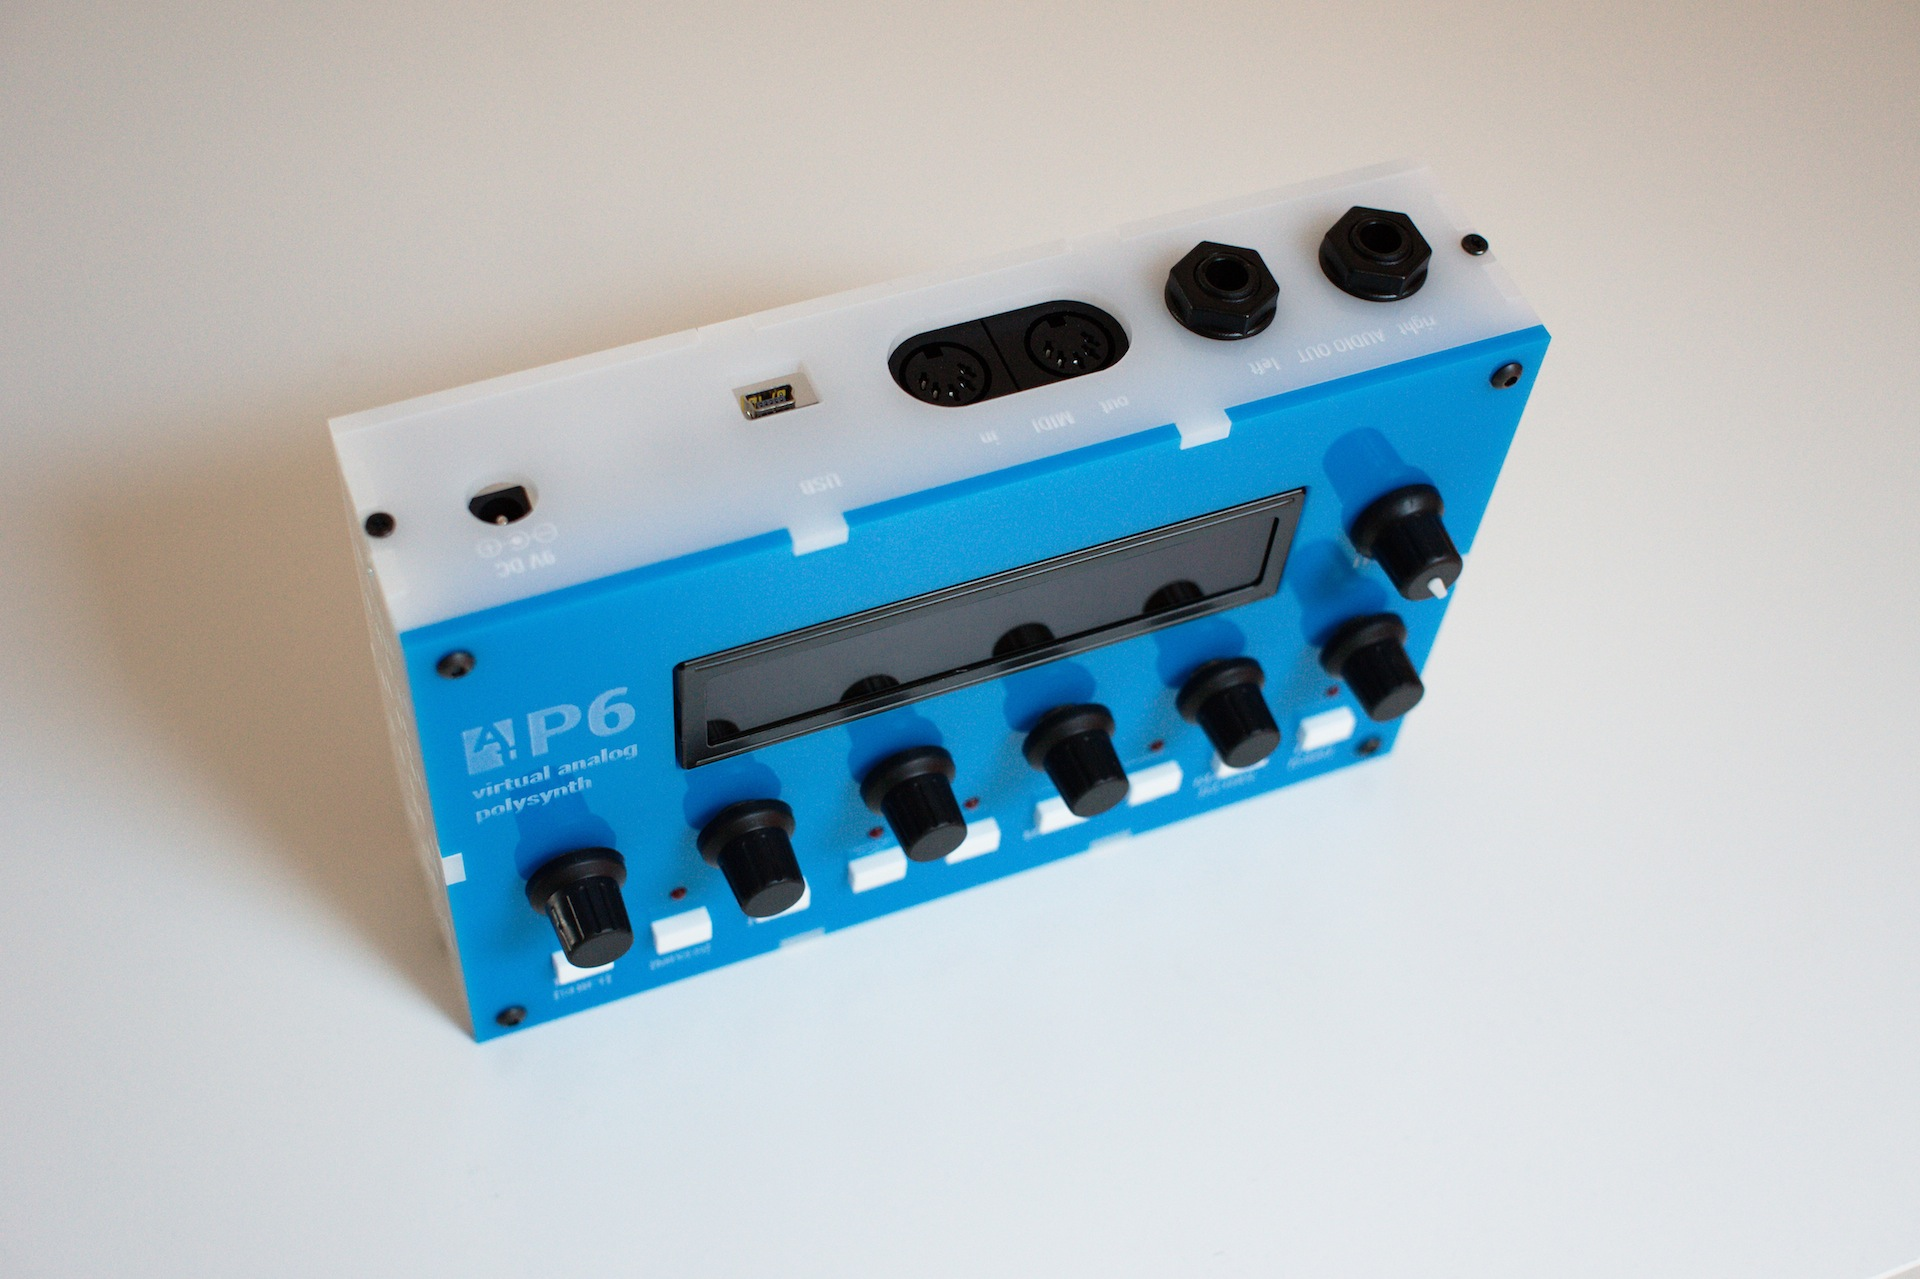 P6 DIY Kit | Audiothingies